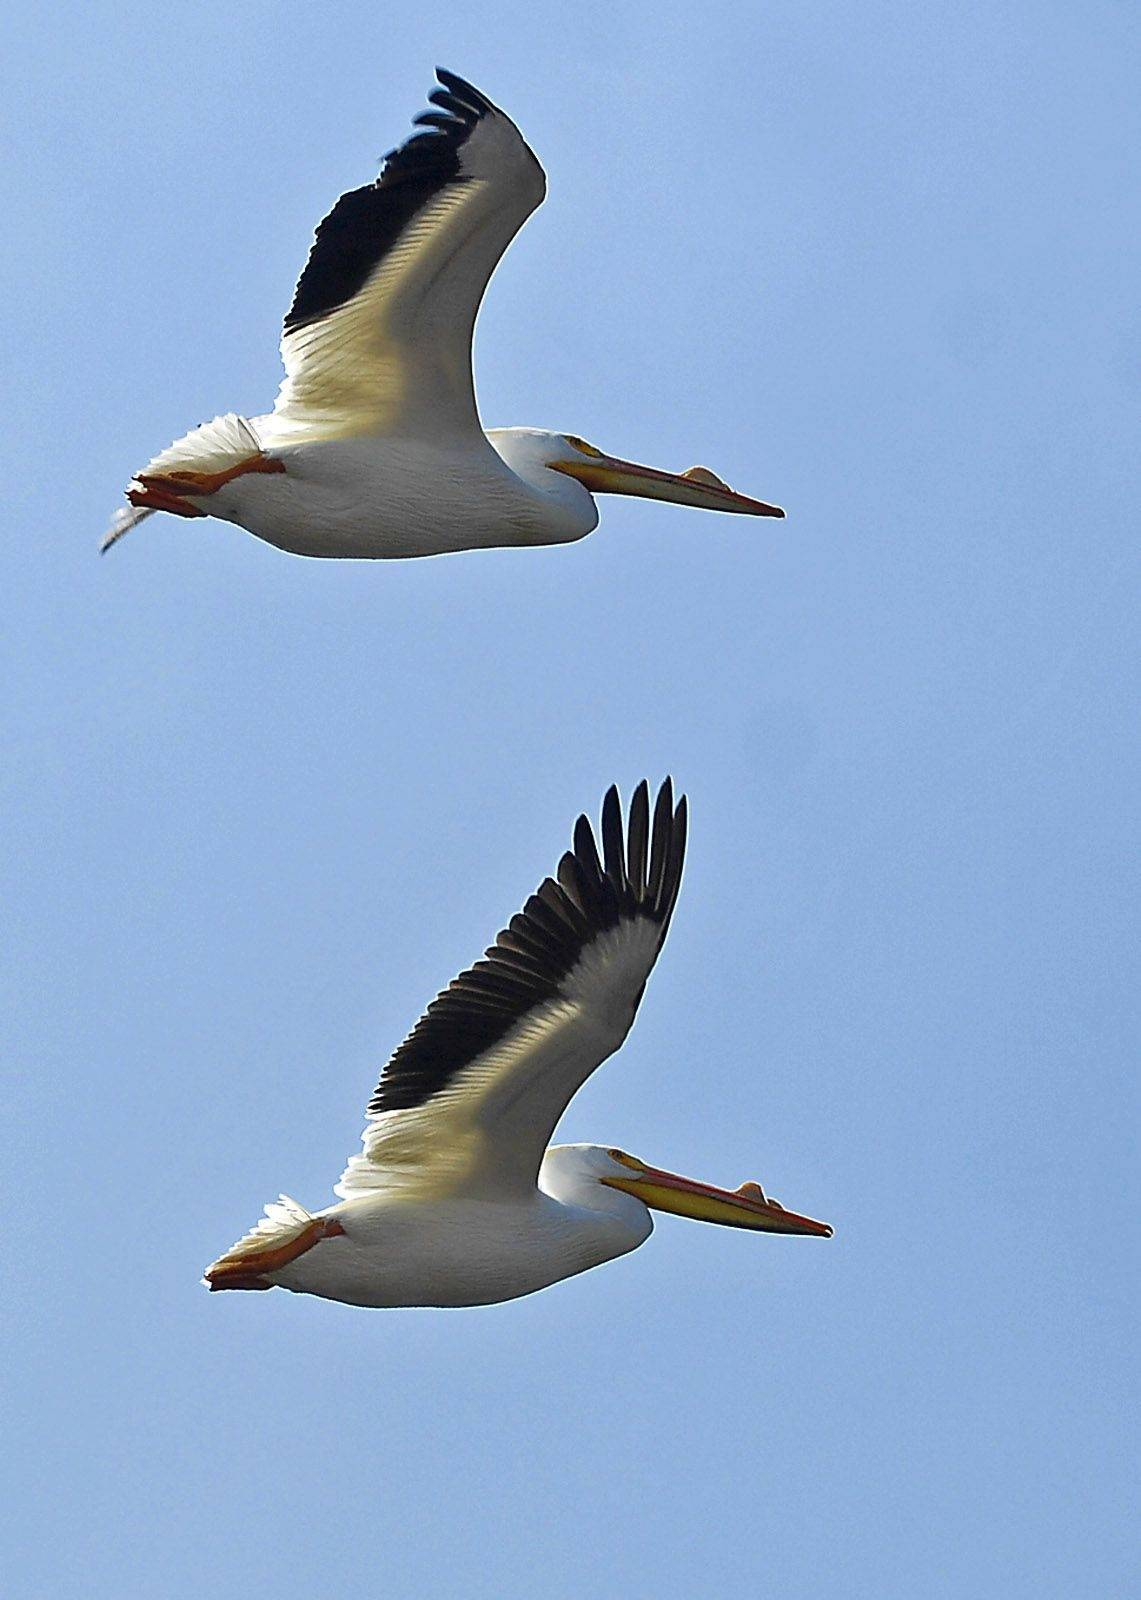 A pair of pelicans flies just overhead Monday near Nelson Lake at the Dick Young Forest Preserve in Batavia. The first pelicans of the season arrived on their migration pattern March 19.